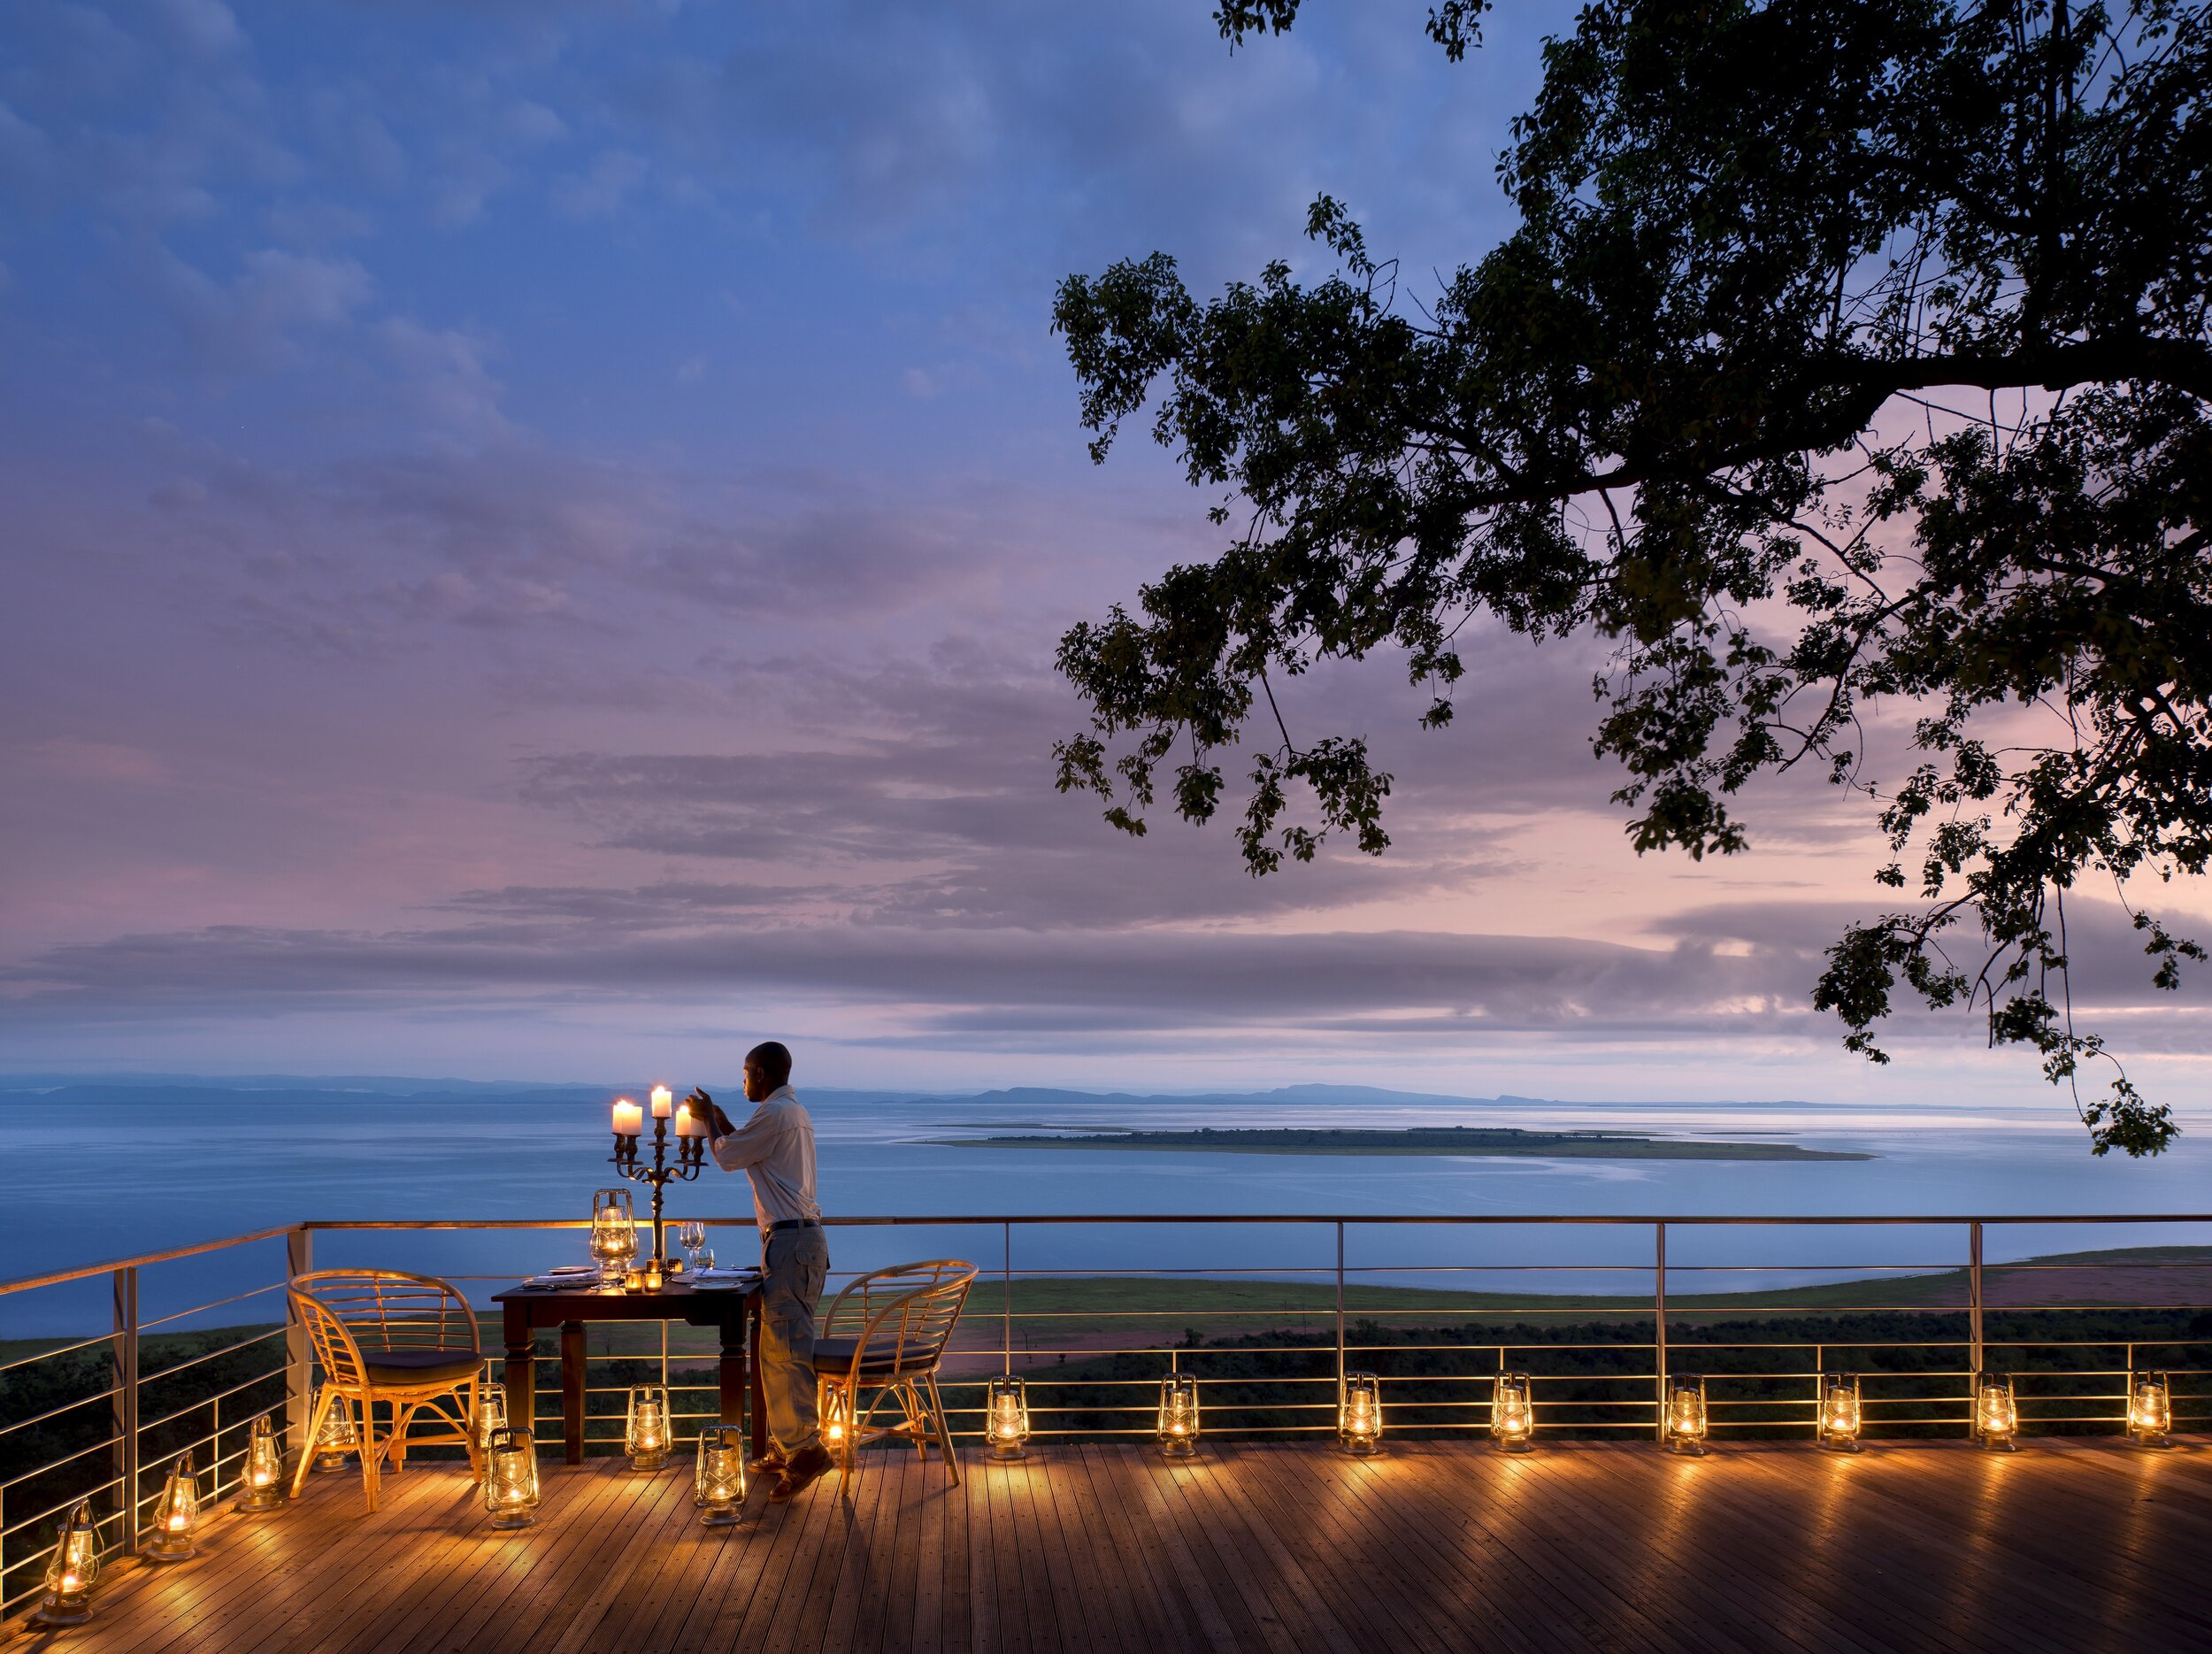 1._bumi_hills_safari_lodge_lake_kariba_zimbabwe_luxury_safari_lodge_private_dining_deck_lake_view_candlelit_dining__african_bush_camps_52.jpg